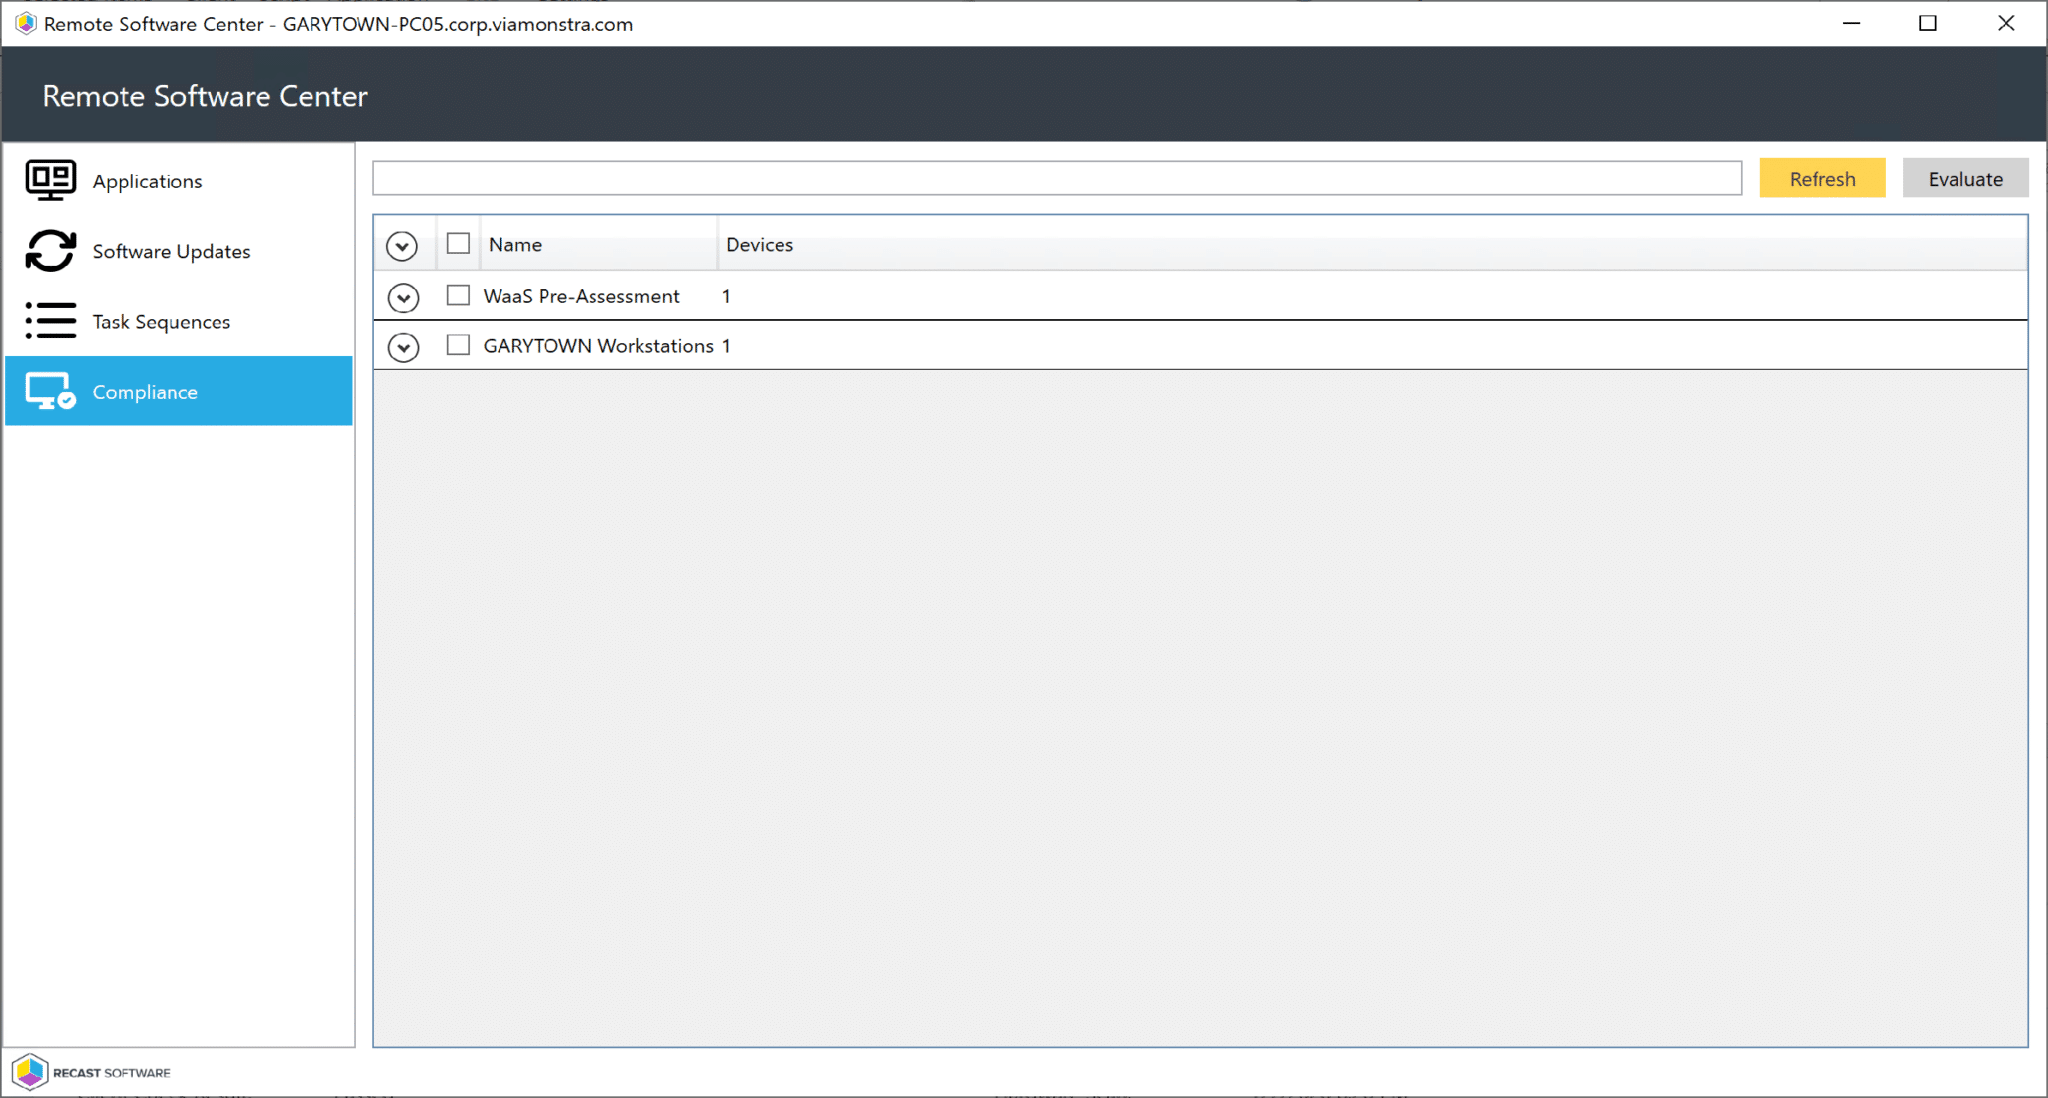 Remote Software Center Compliance Tab